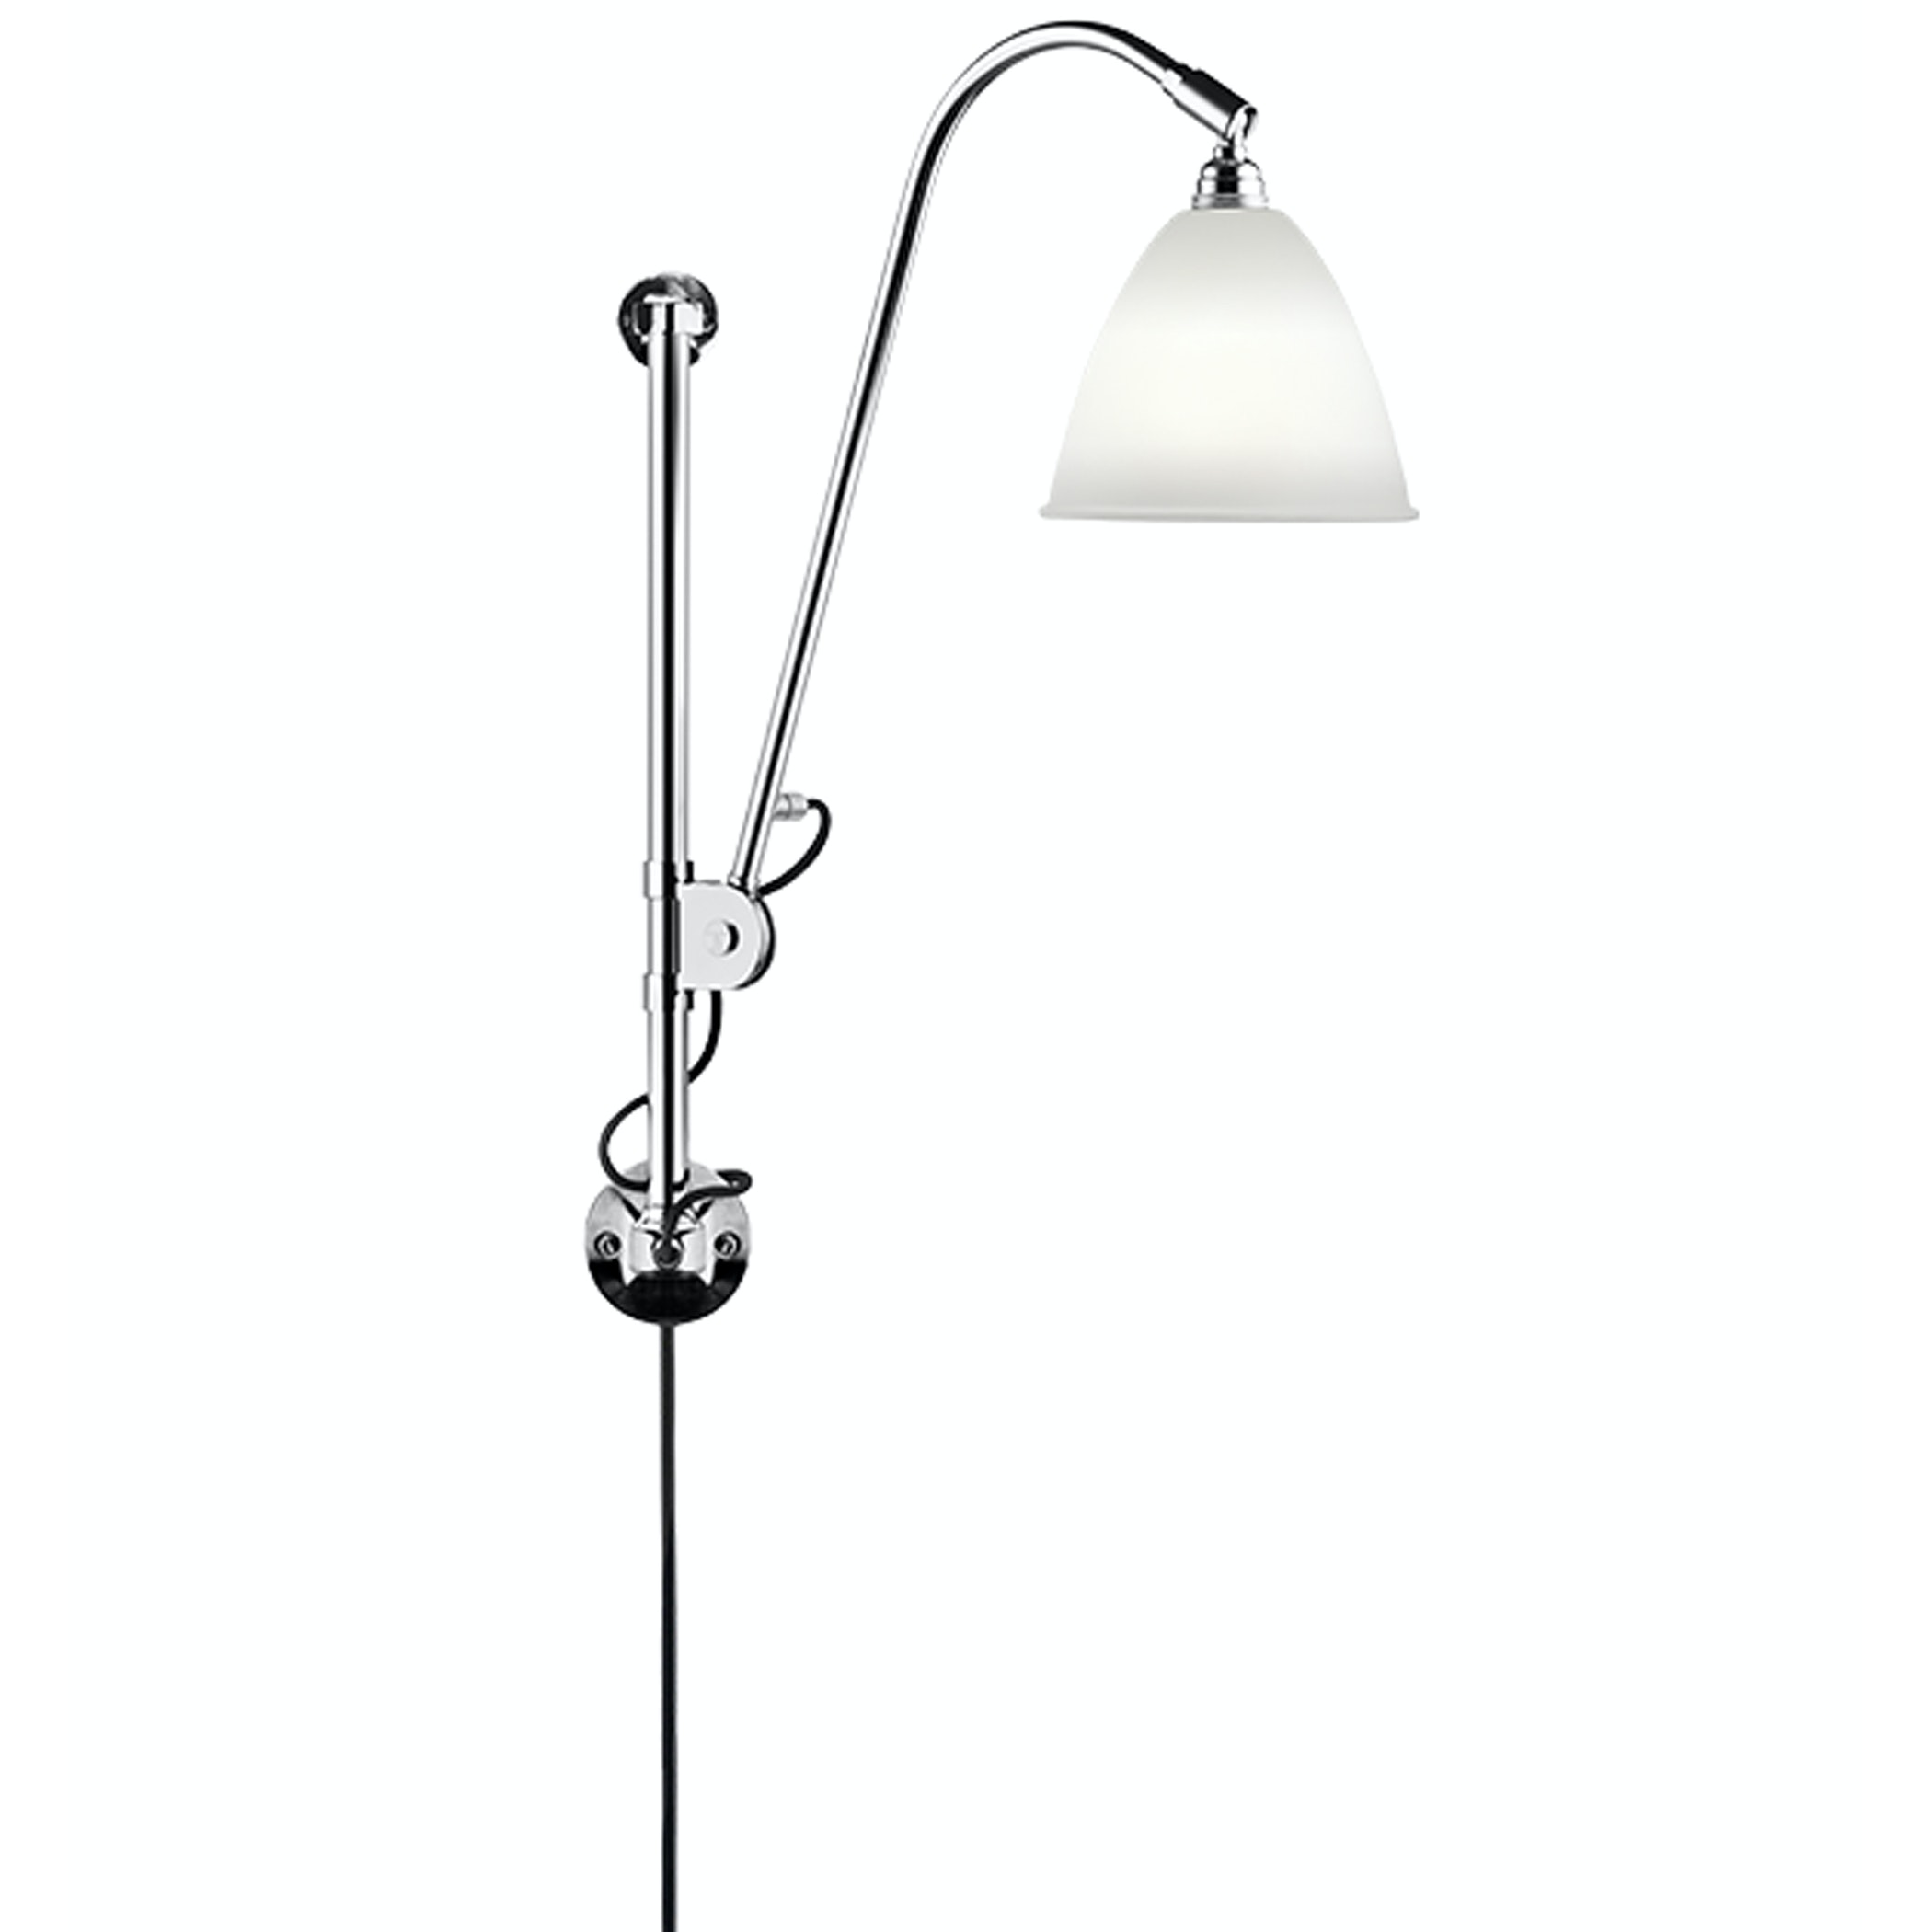 Modern Wall Lighting By Contemporary Designers At Haute Living Porcelain Light Wiring Diagram Bl5 Chrome Product